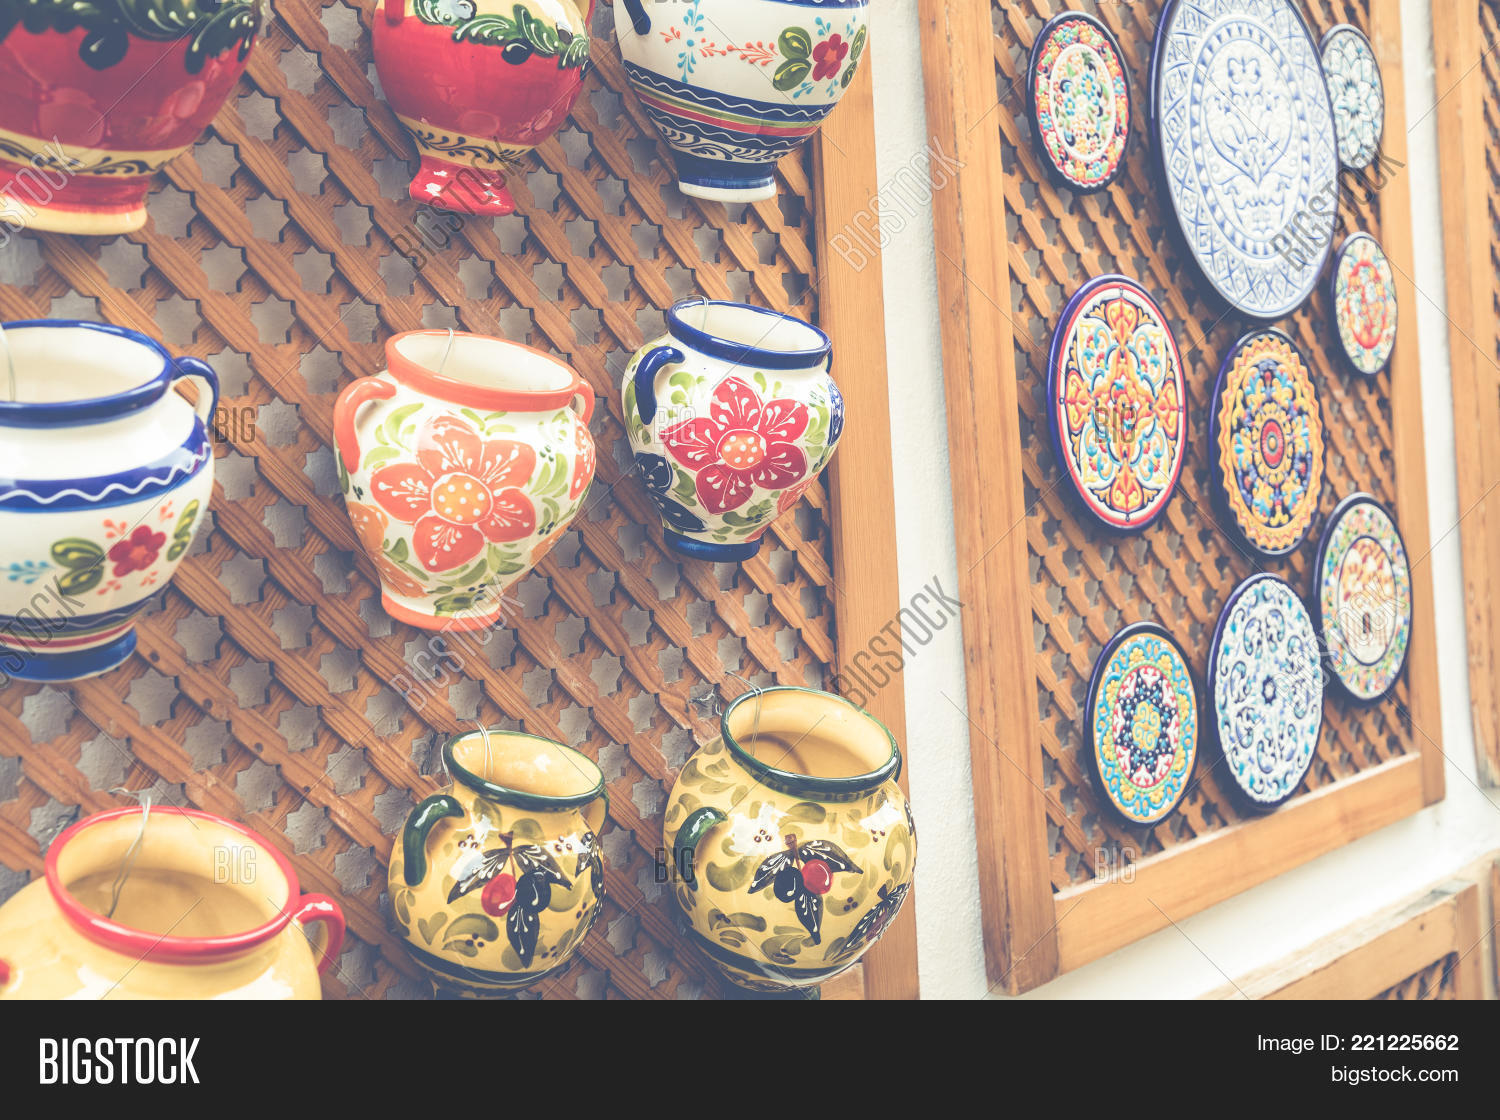 Ceramics Plates Local Image & Photo (Free Trial) | Bigstock